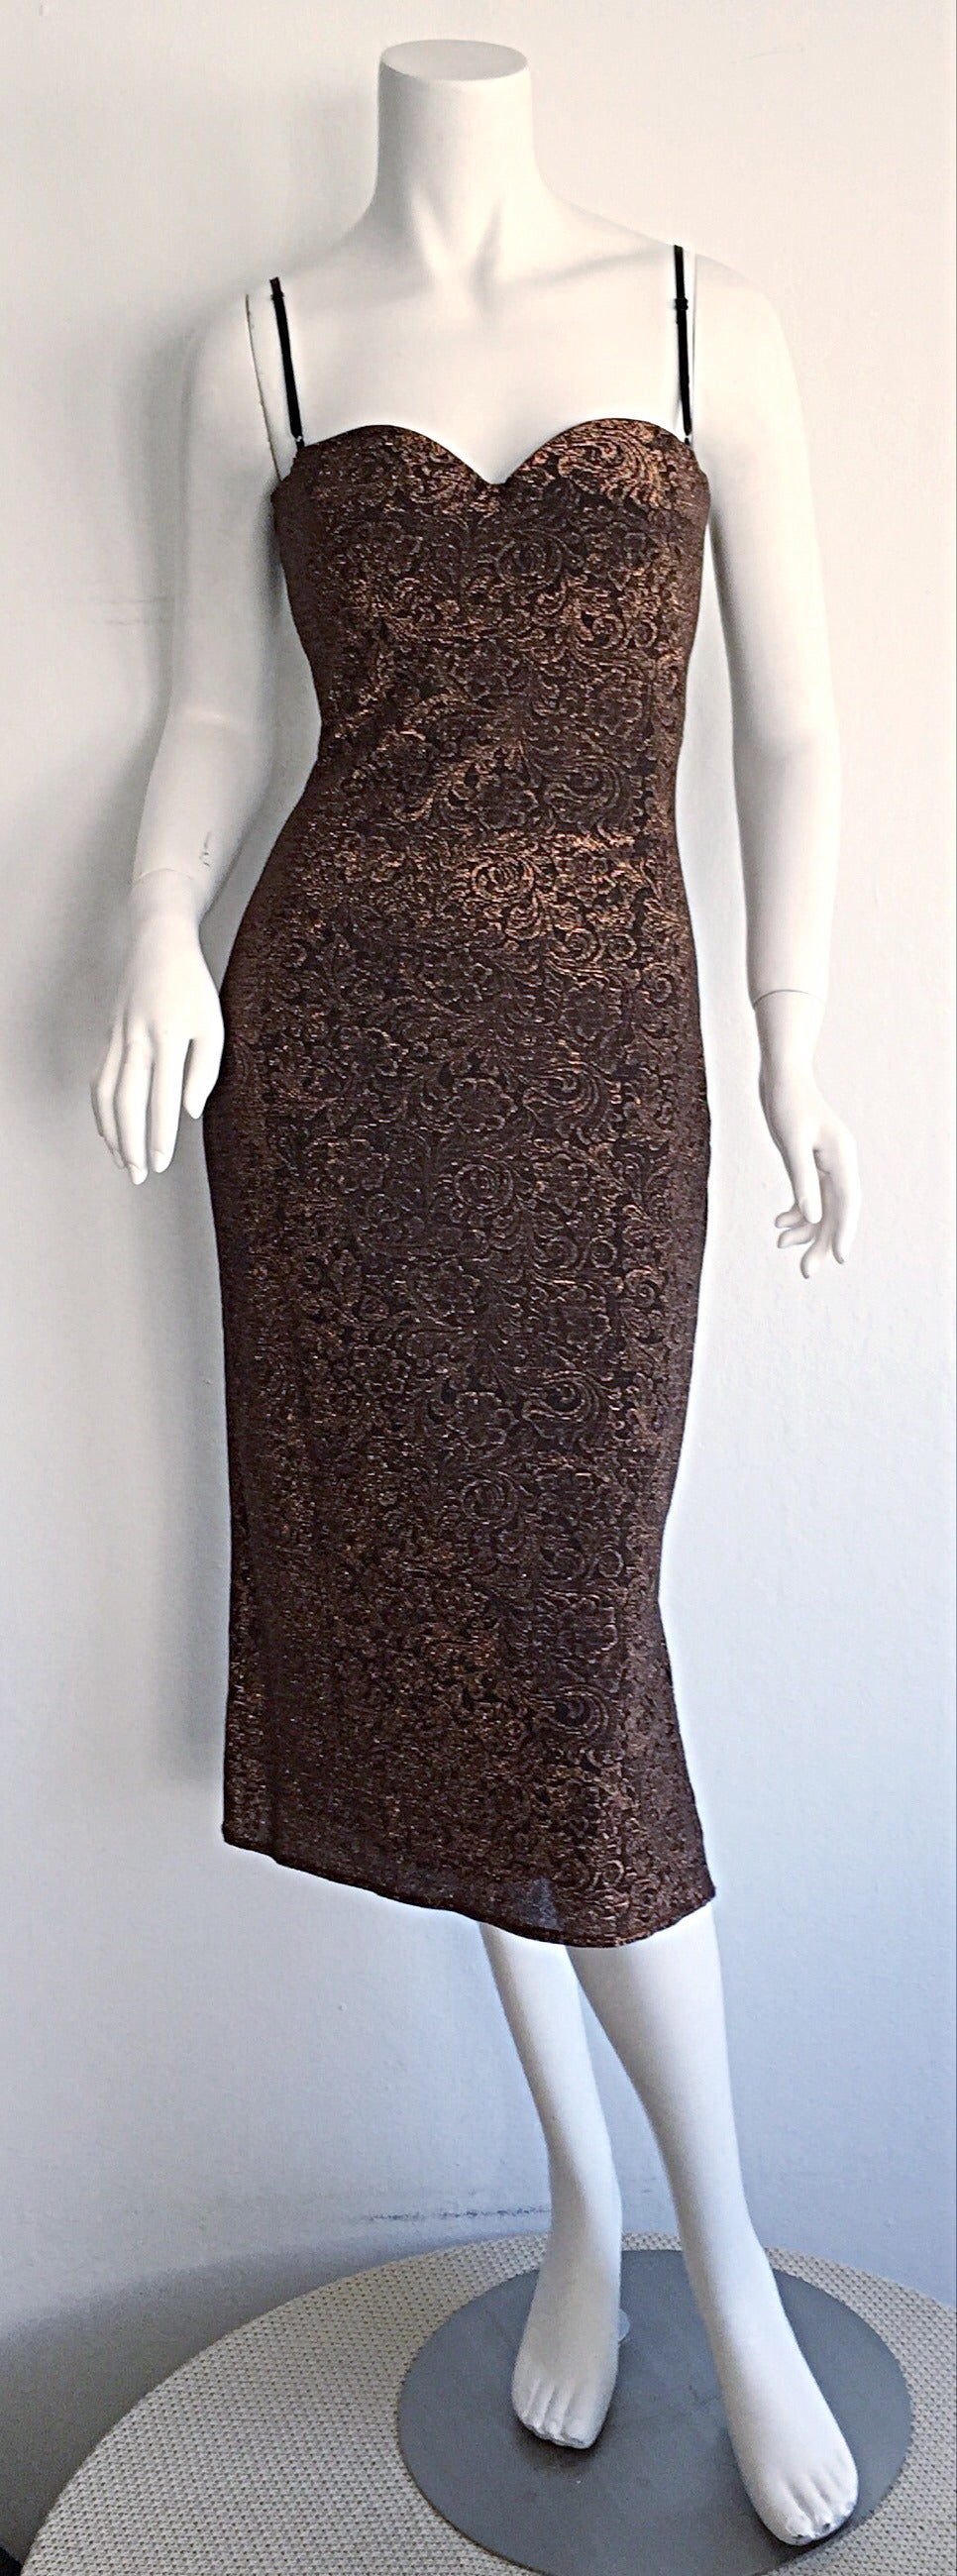 Beautiful Vintage Casadei Bronze Intricate Metallic Dress w/ Convertible Straps In Excellent Condition For Sale In Chicago, IL